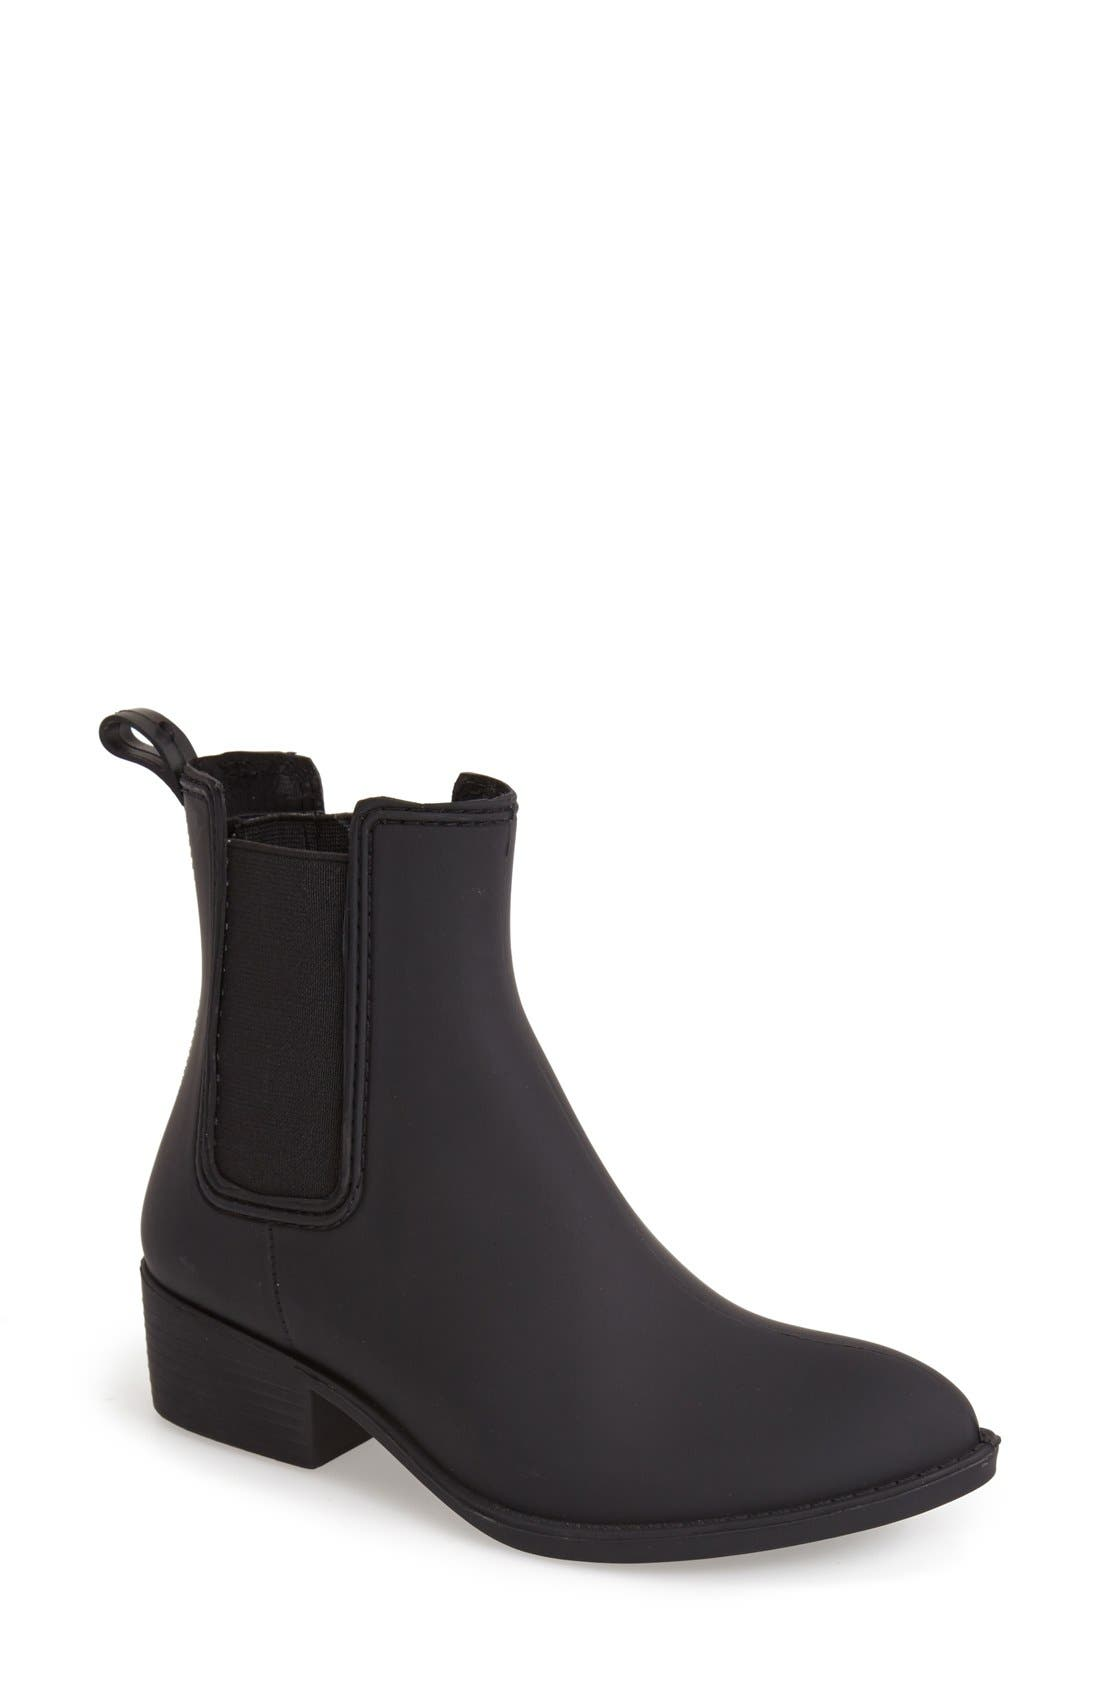 Alternate Image 1 Selected - Jeffrey Campbell 'Stormy' Rain Boot (Women)